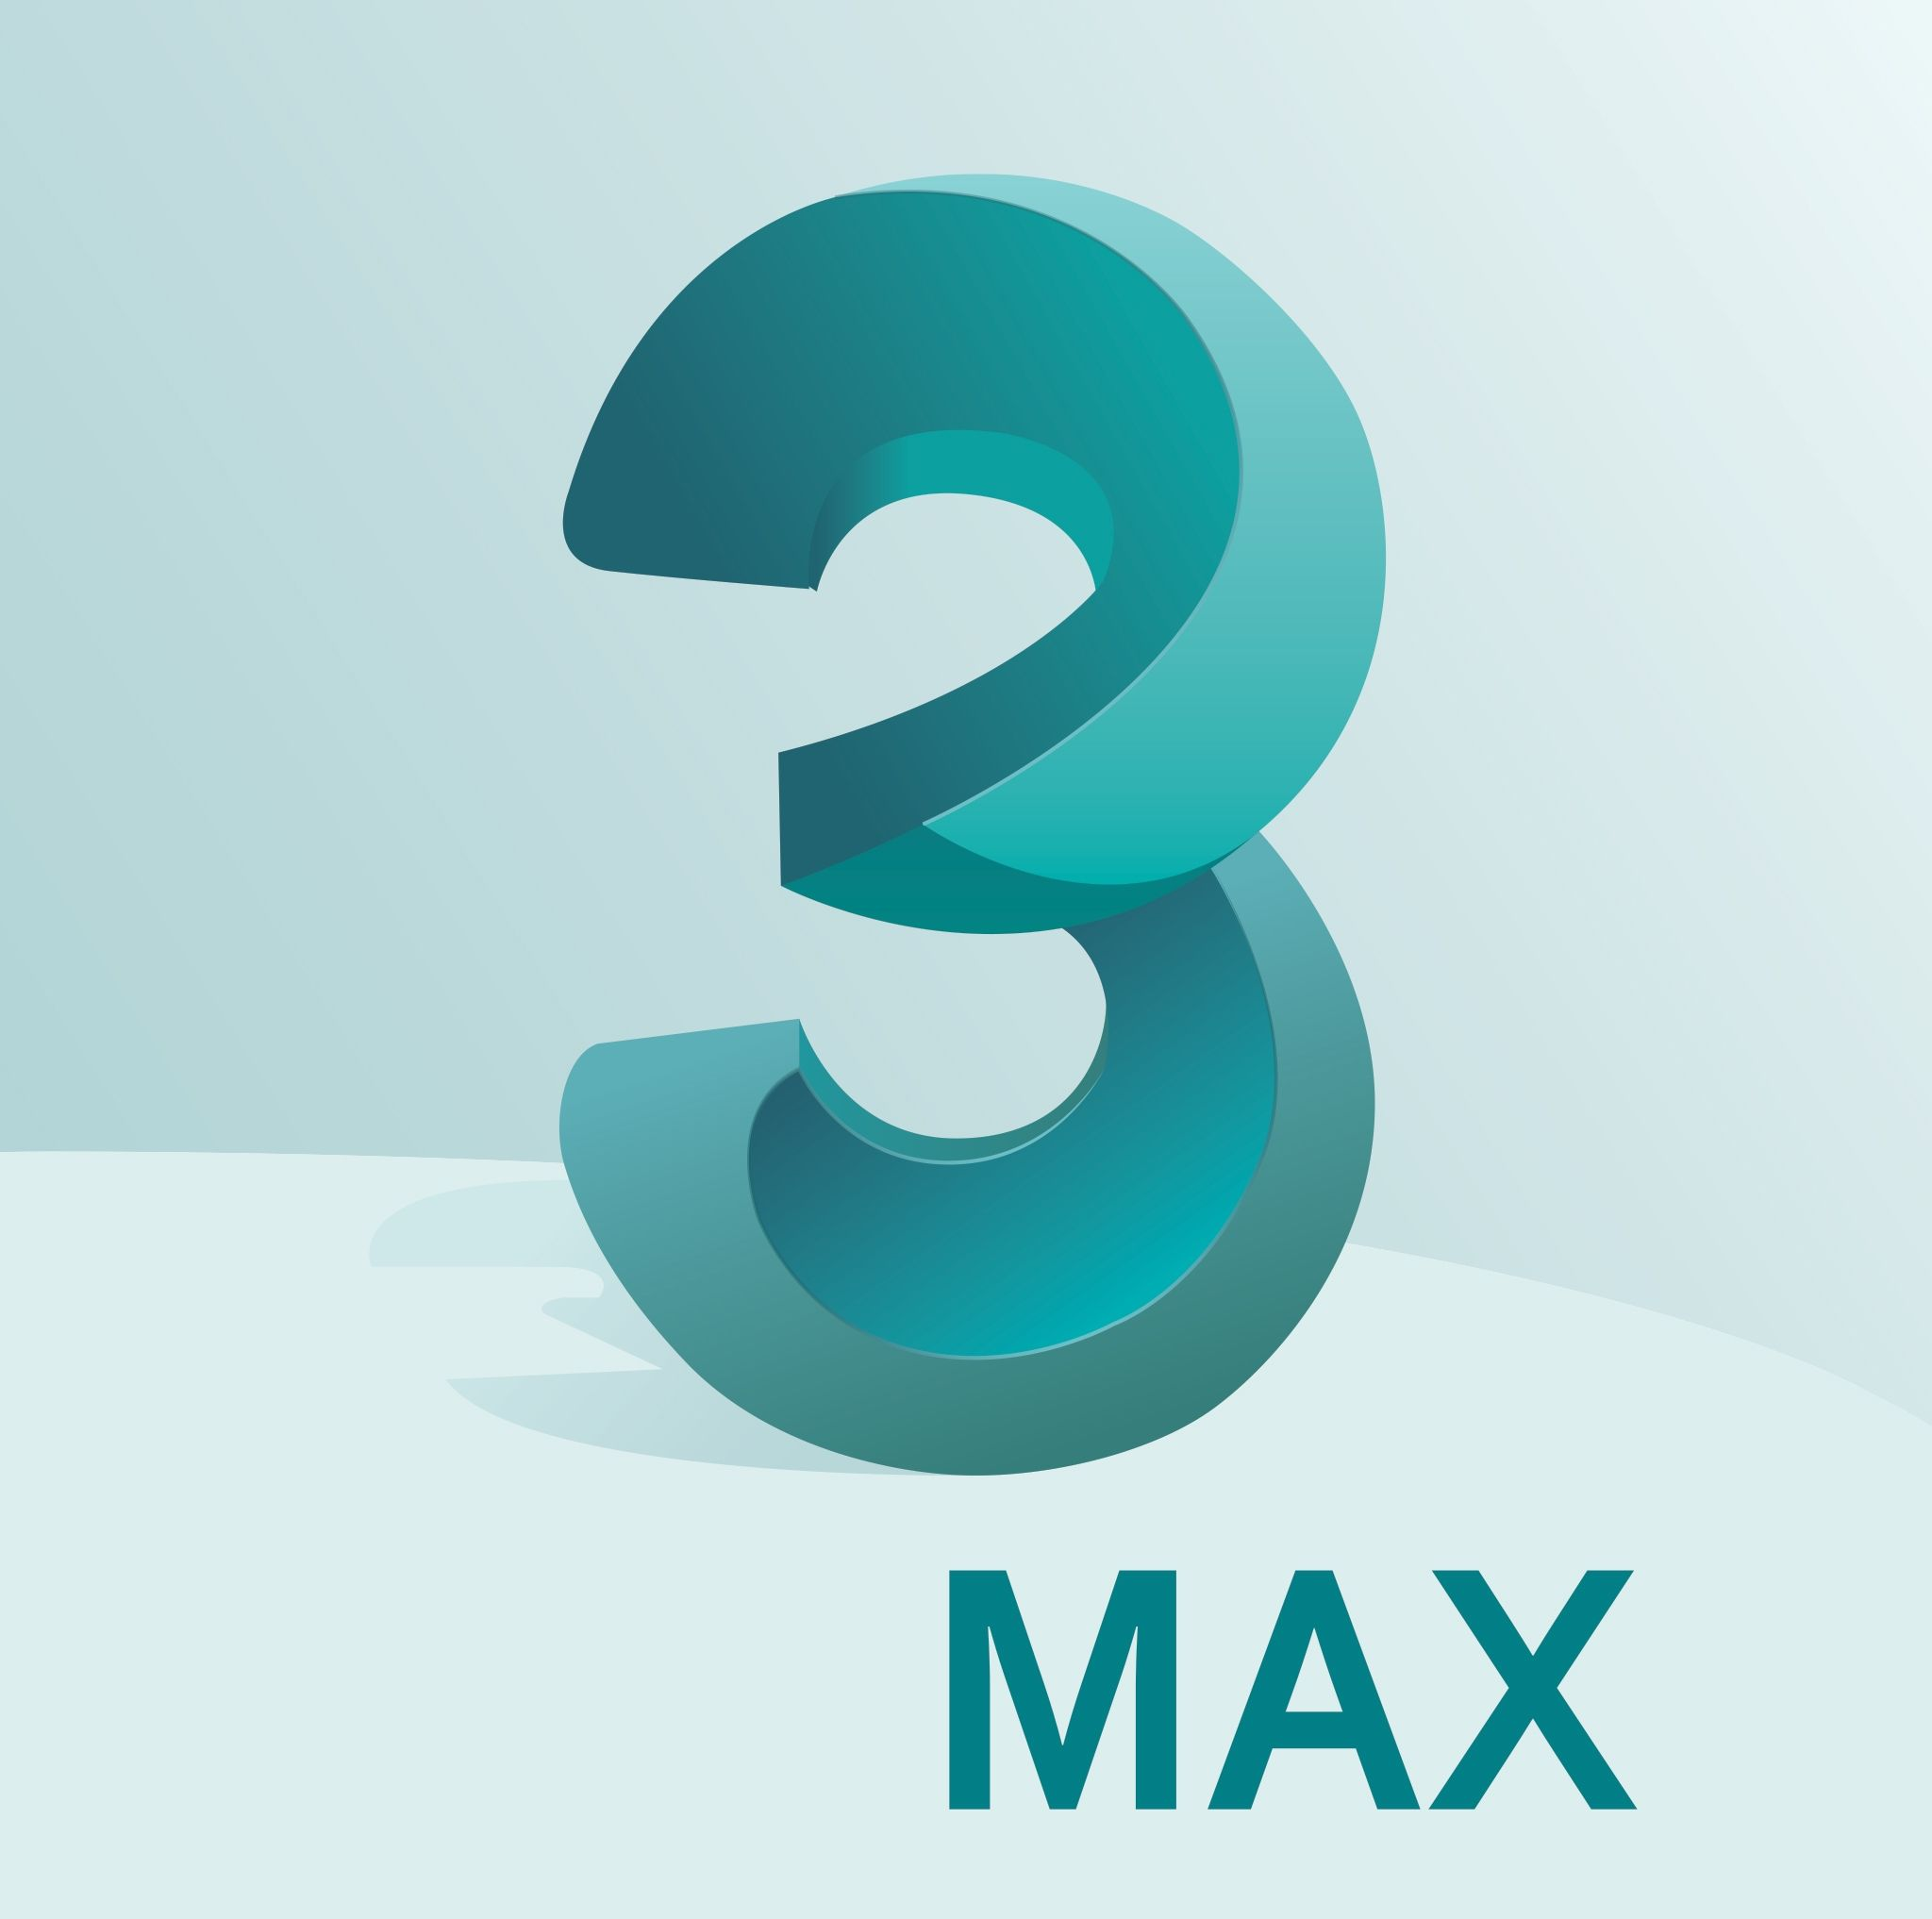 2048x2034 3ds Max Logo (Autodesk) Vector Eps Free Download, Logo, Icons